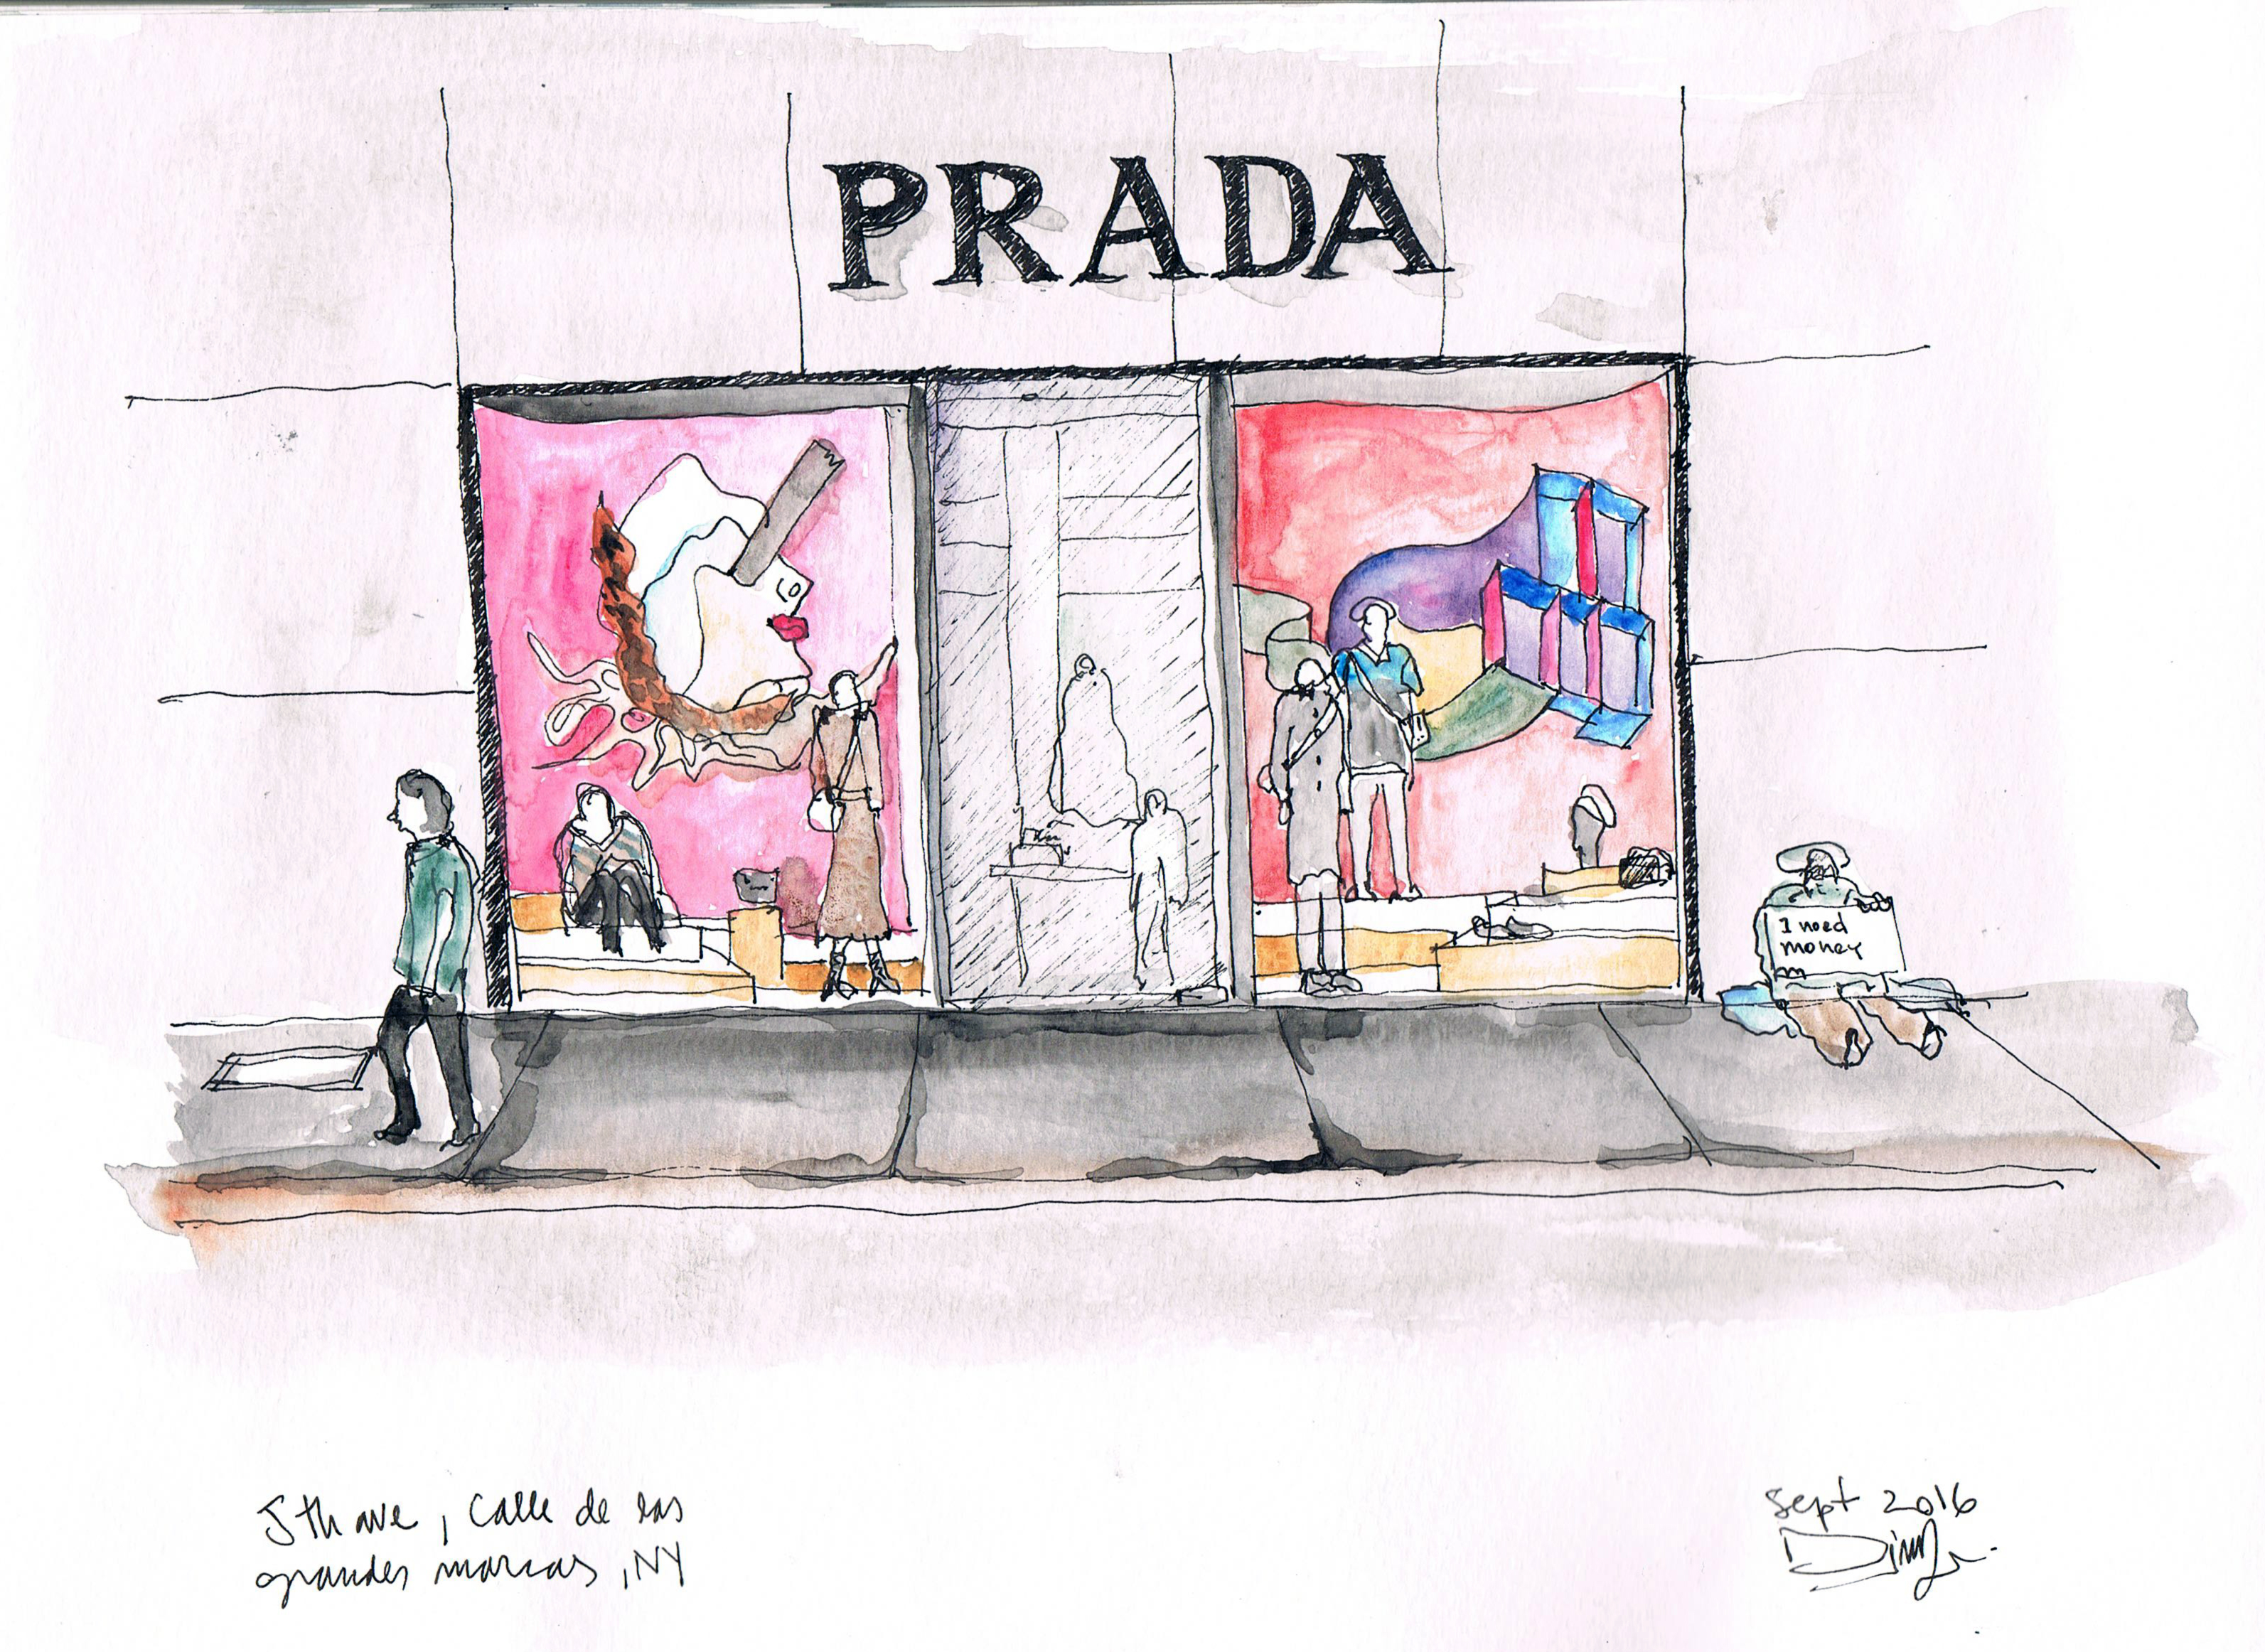 Prada, 5th ave